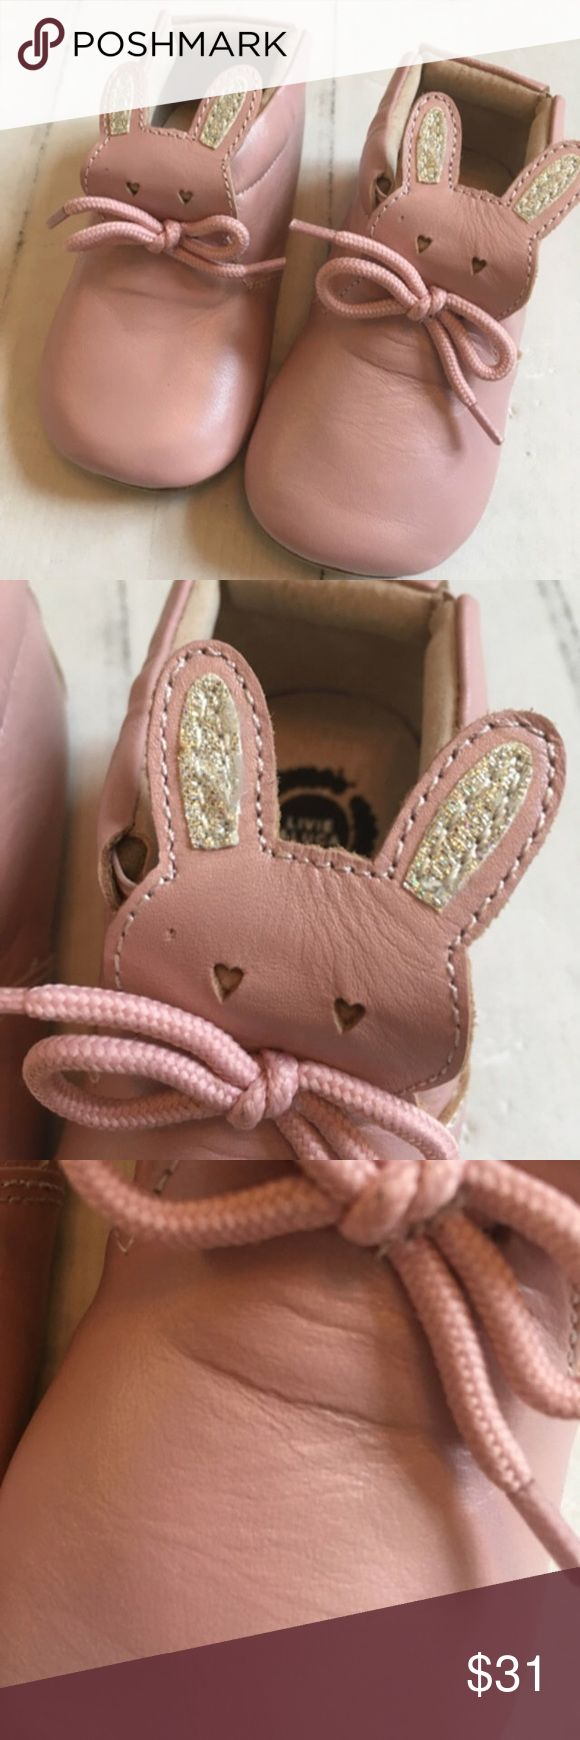 New in Box Livie & Luca Pink Pipkin Crib Shoes The cutest little booties by Livie & Luca. Pipkin soft soles - genuine leather in light pink shimmer. Please note some wrinkles in leather- typical for L&L. Will ship with box. These retail for $41 Livie & Luca Shoes Baby & Walker